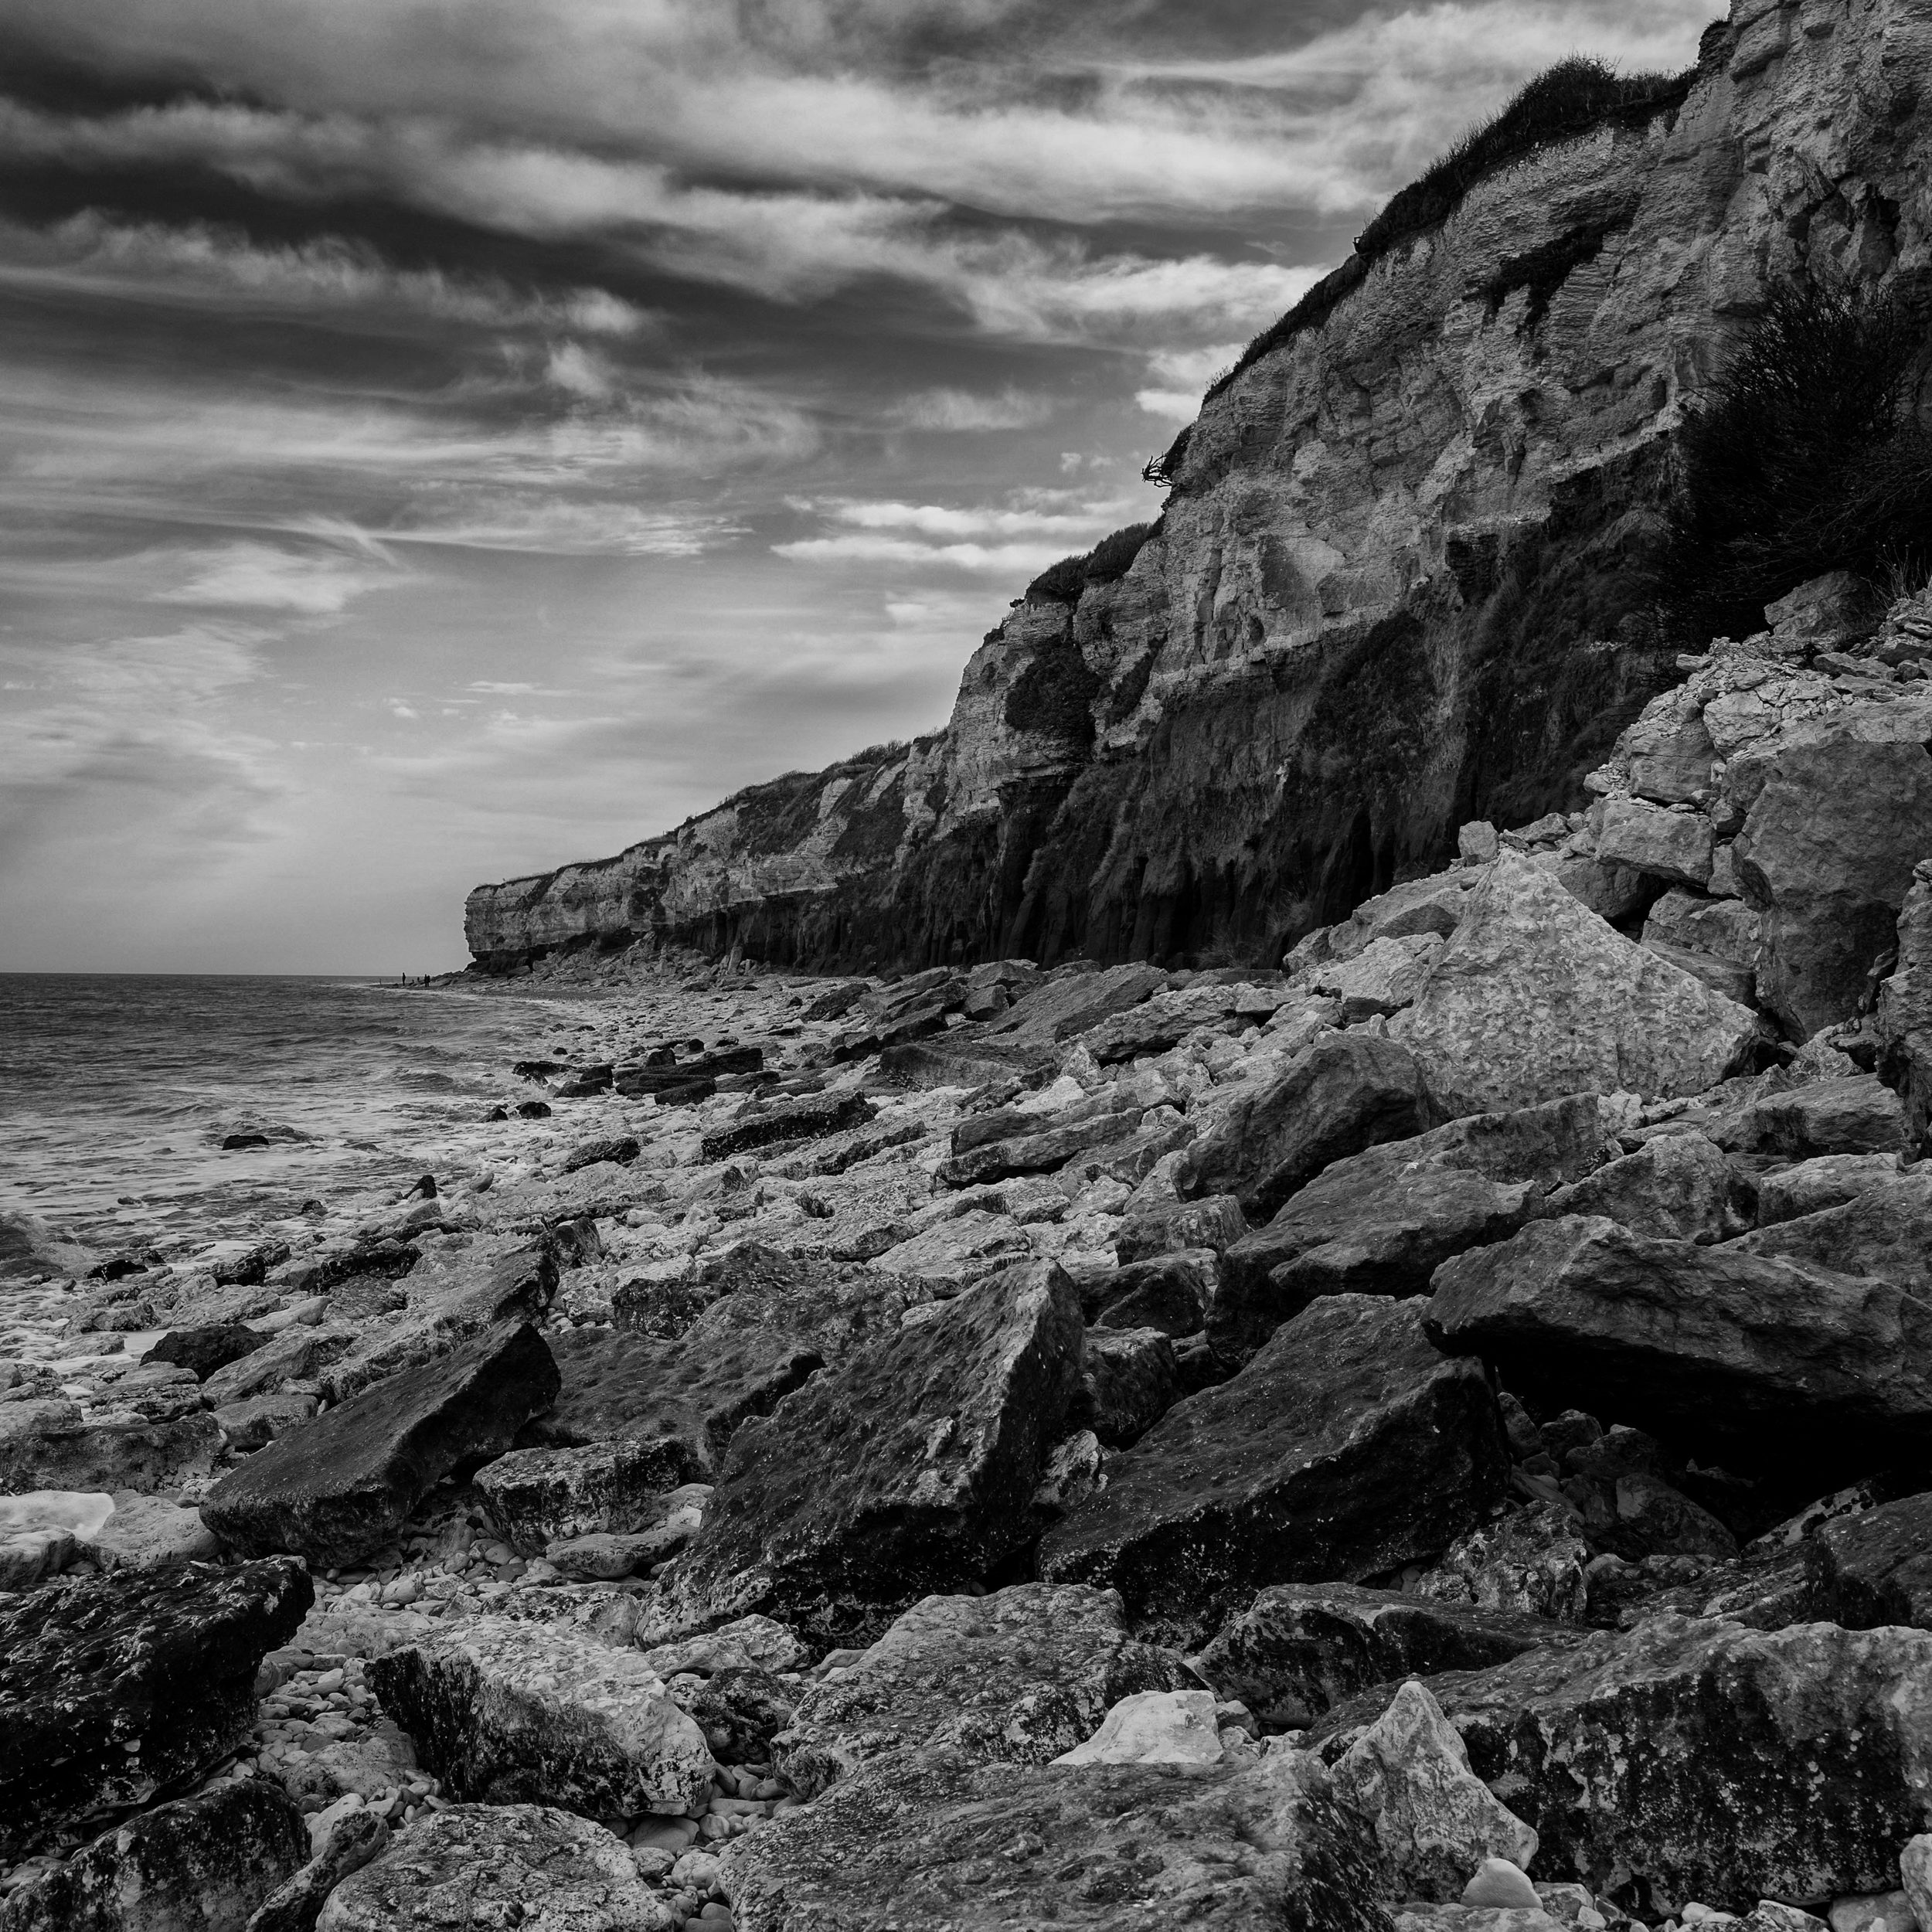 Leica wants the SL to appeal to landscape photographers. With results like this, that won't be an issue! f/7.1 @ 1/100th